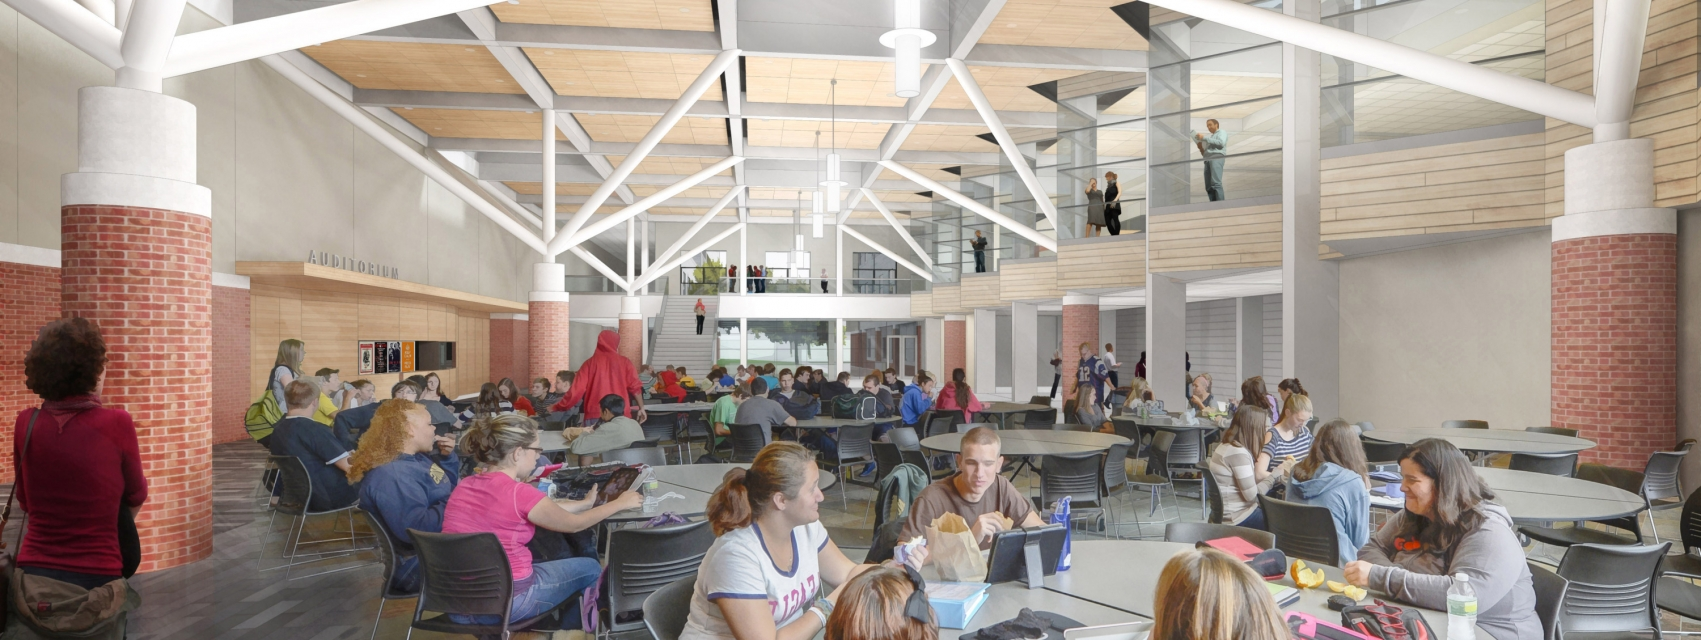 Architecture and Interior Design Services for Winchester High School Cafeteria